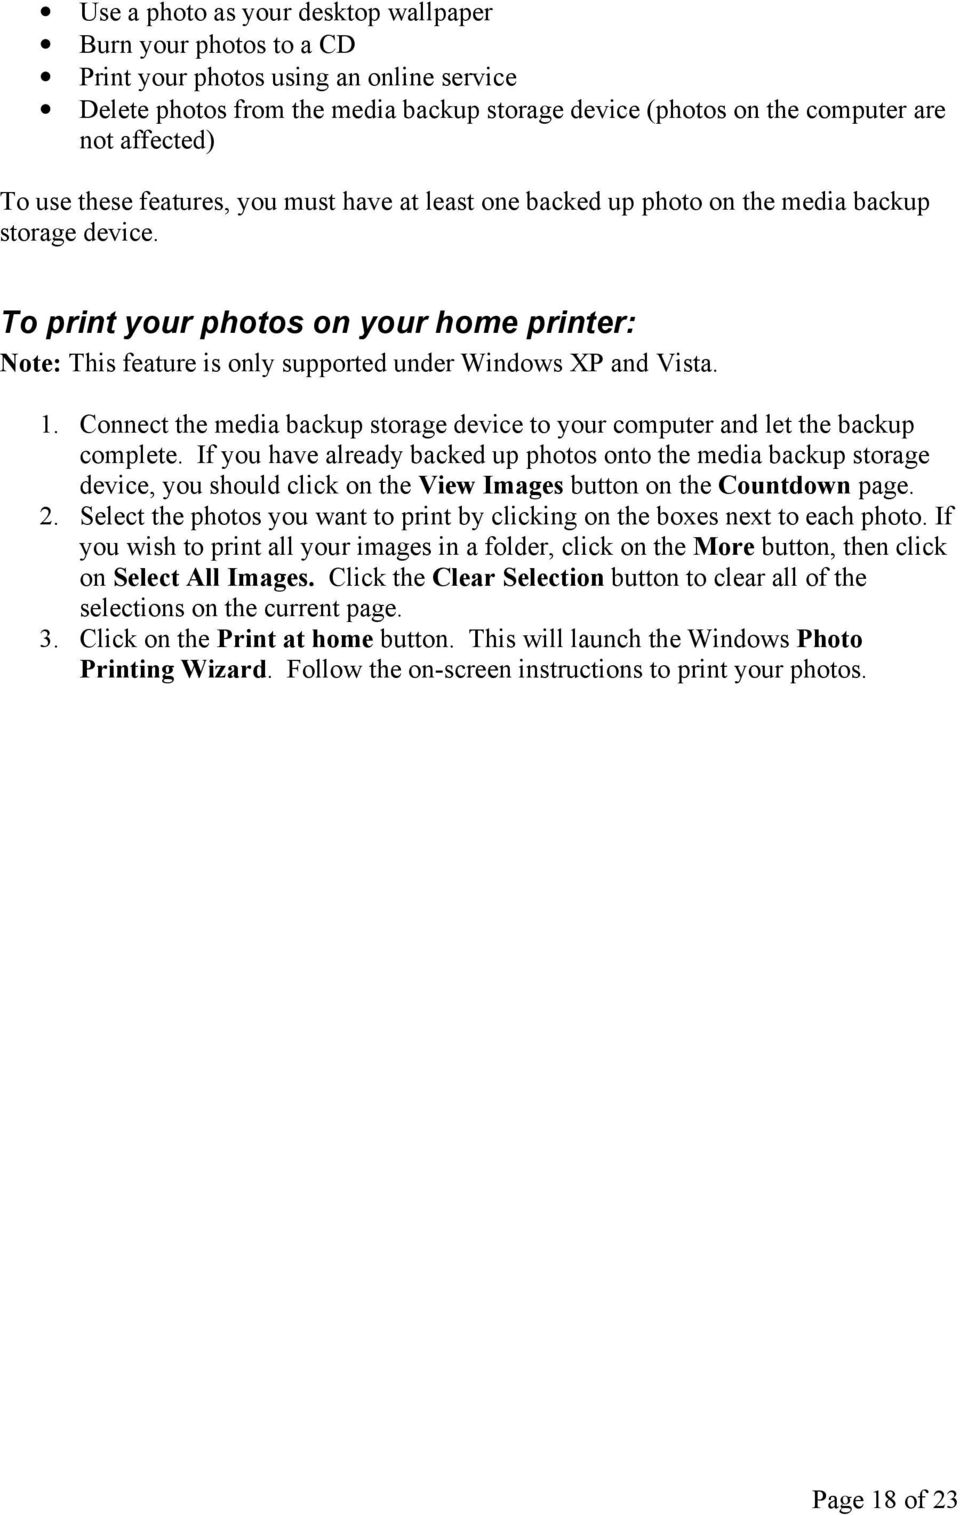 To print your photos on your home printer: Note: This feature is only supported under Windows XP and Vista. 1. Connect the media backup storage device to your computer and let the backup complete.